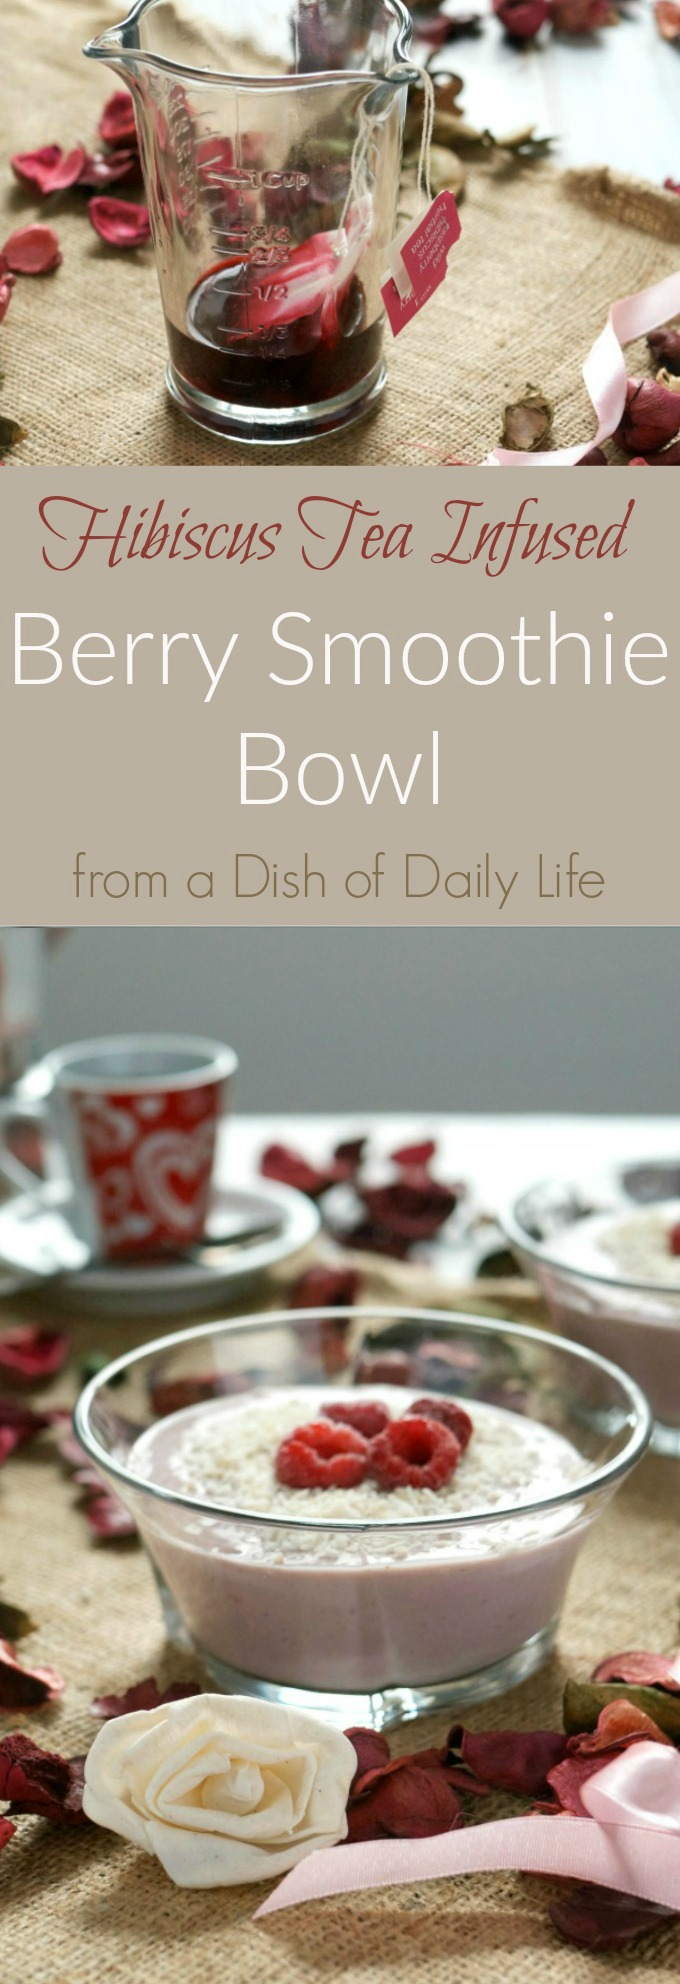 Start your day off right with this dairy free berry smoothie bowl. It's naturally sweet, packed with protein and infused with hibiscus tea.